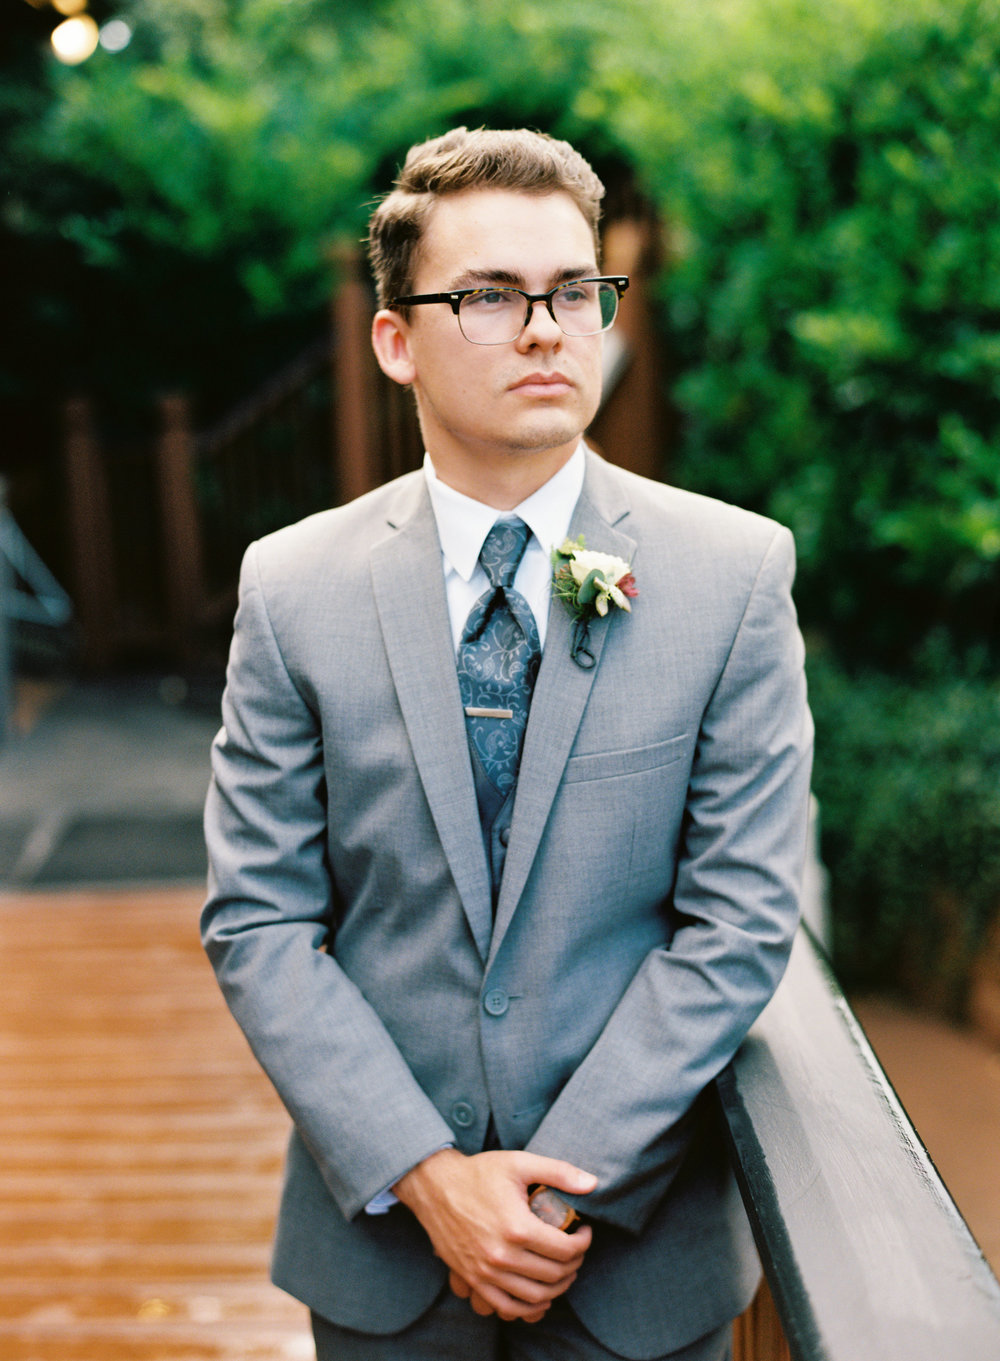 Skylar_Jake_Wedding_Film-0120.jpg